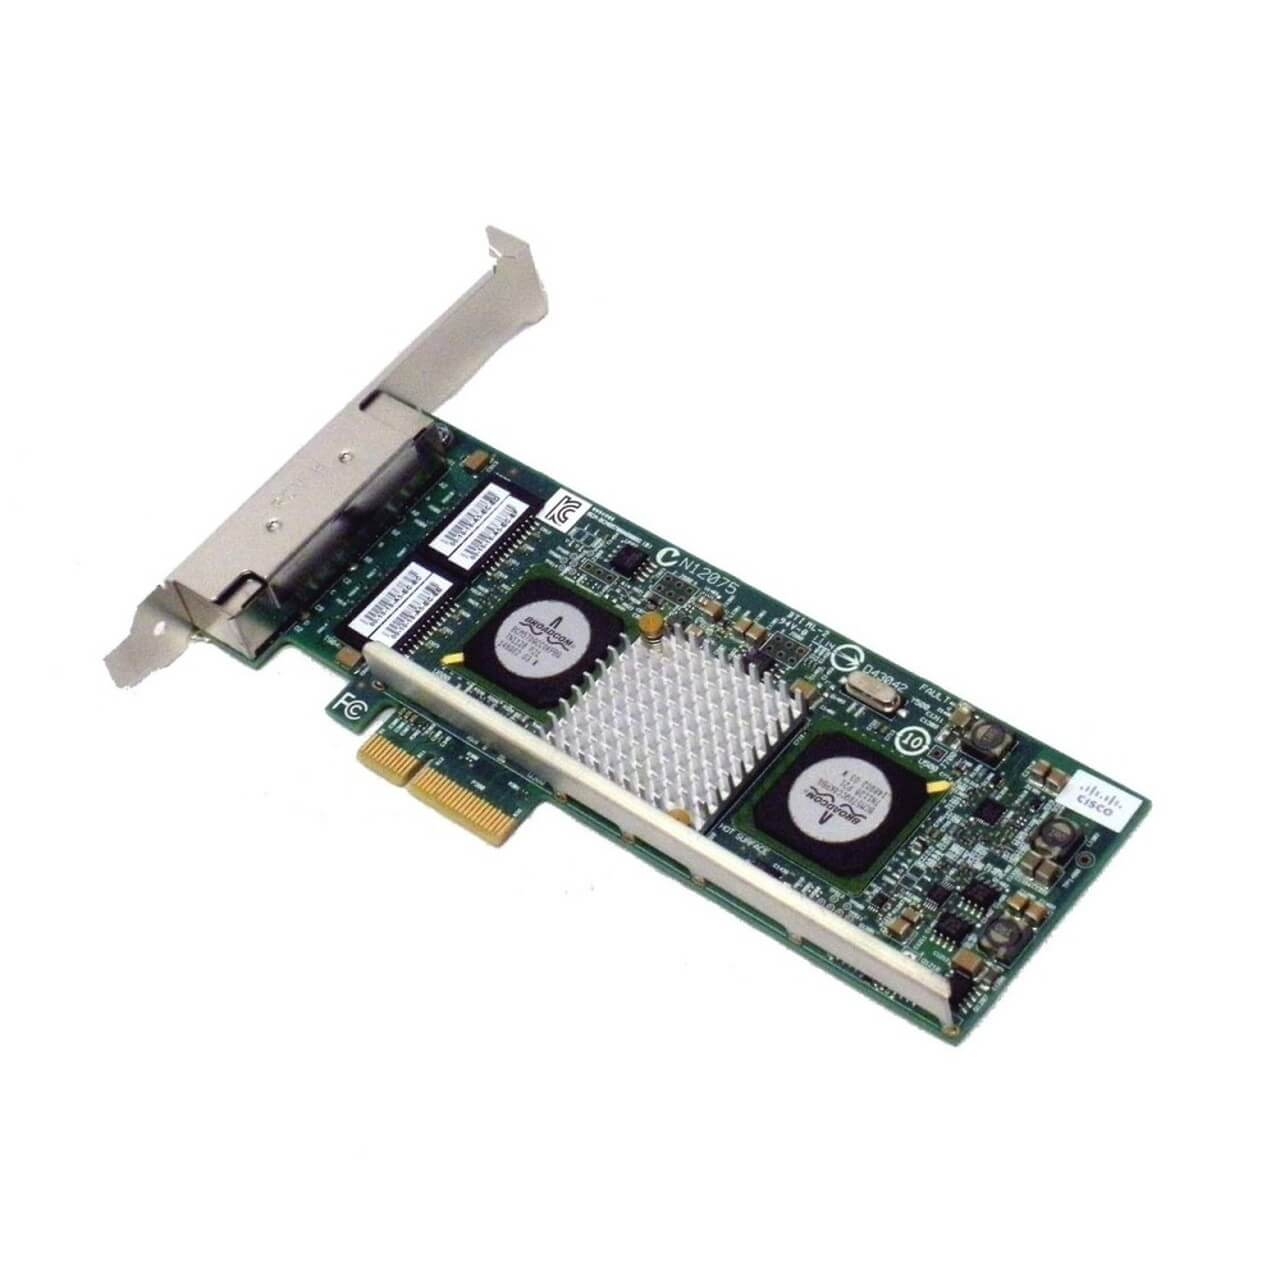 Buy & save on refurbished computer server CISCO Adapters from your trusted partners at Flagship Technologies.